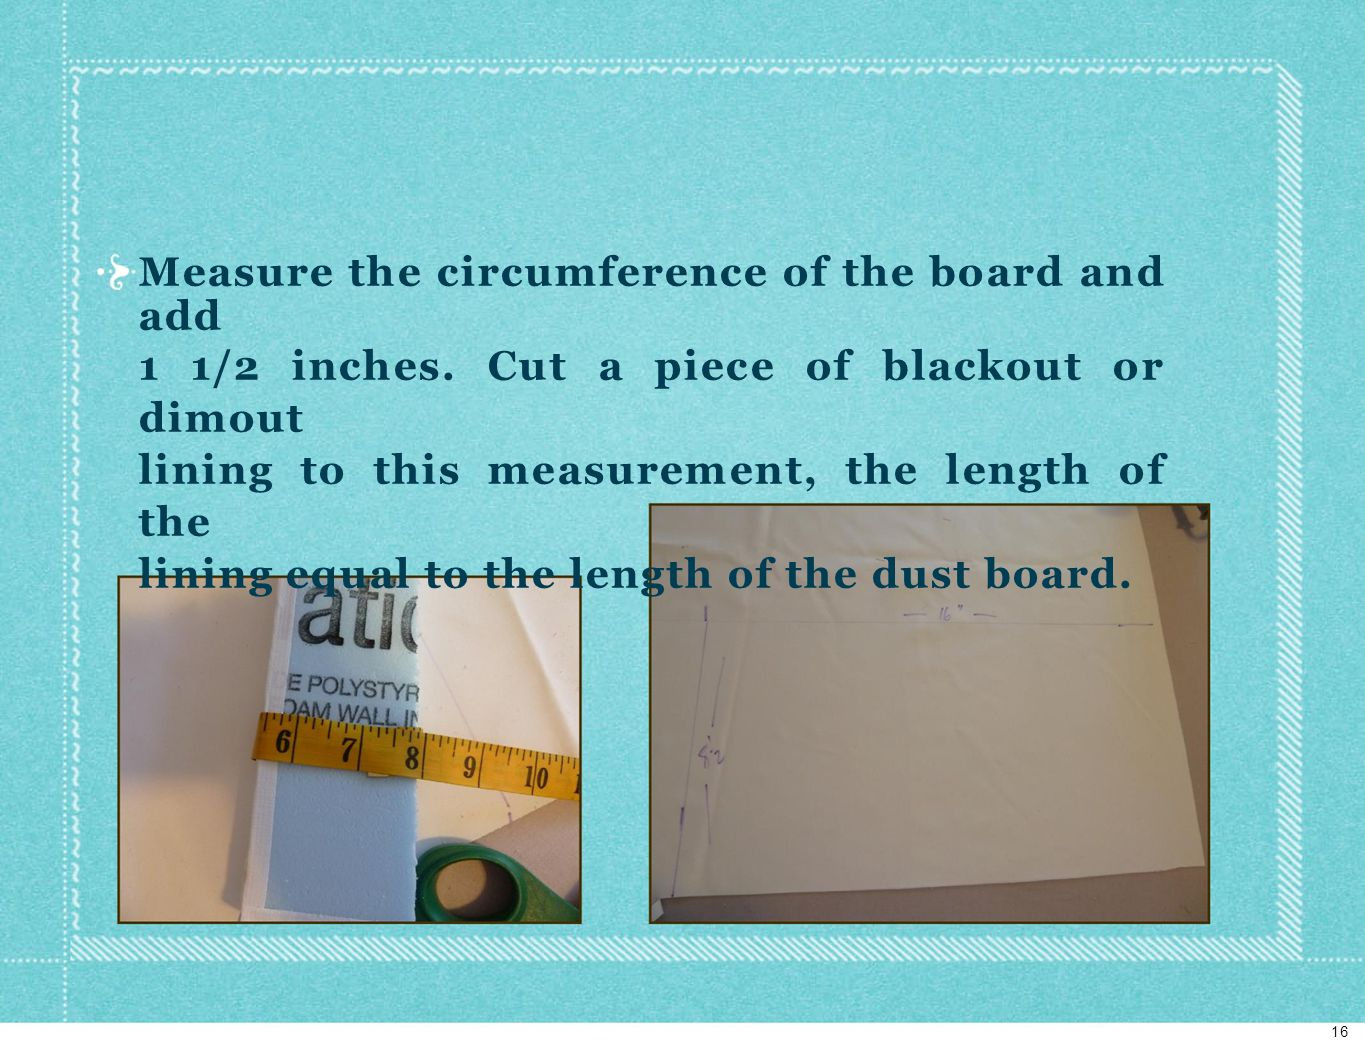 Measure the circumference of the board and add 1 1/2 inches.